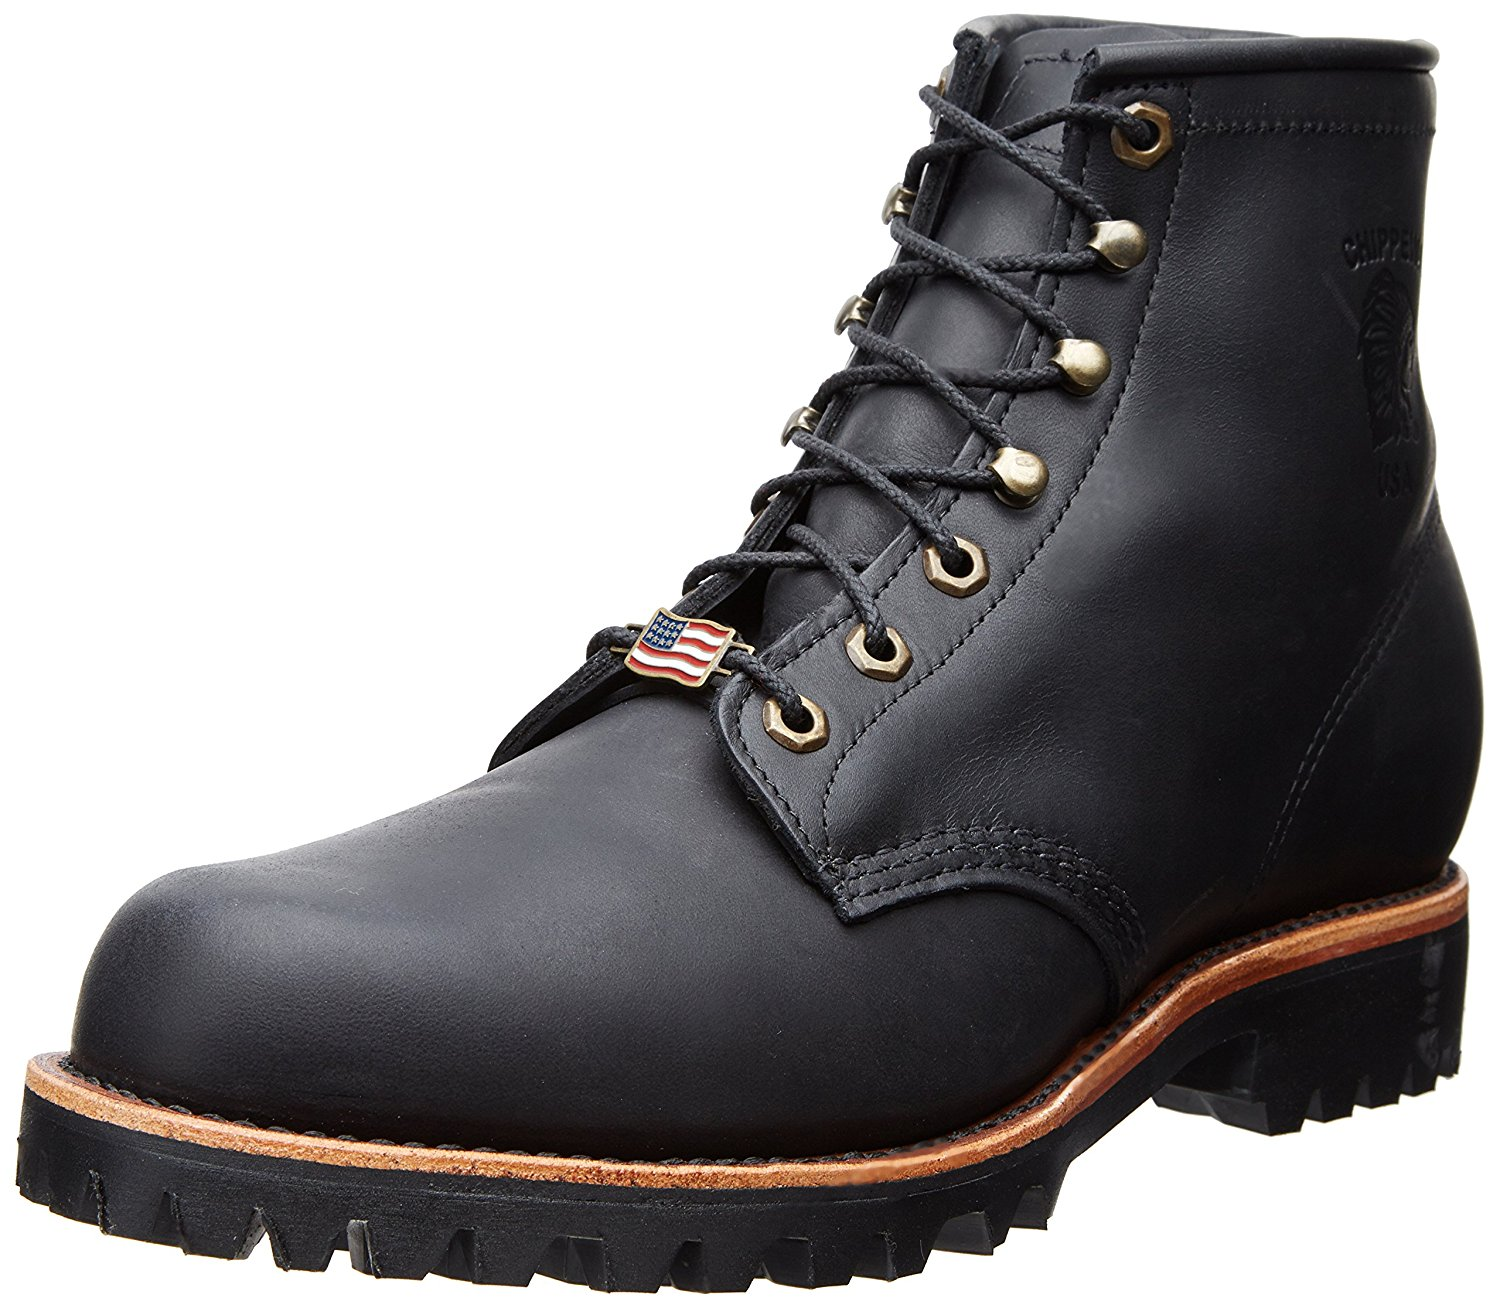 6. Chippewa Men's 6″ 20028 Lace Up Boot